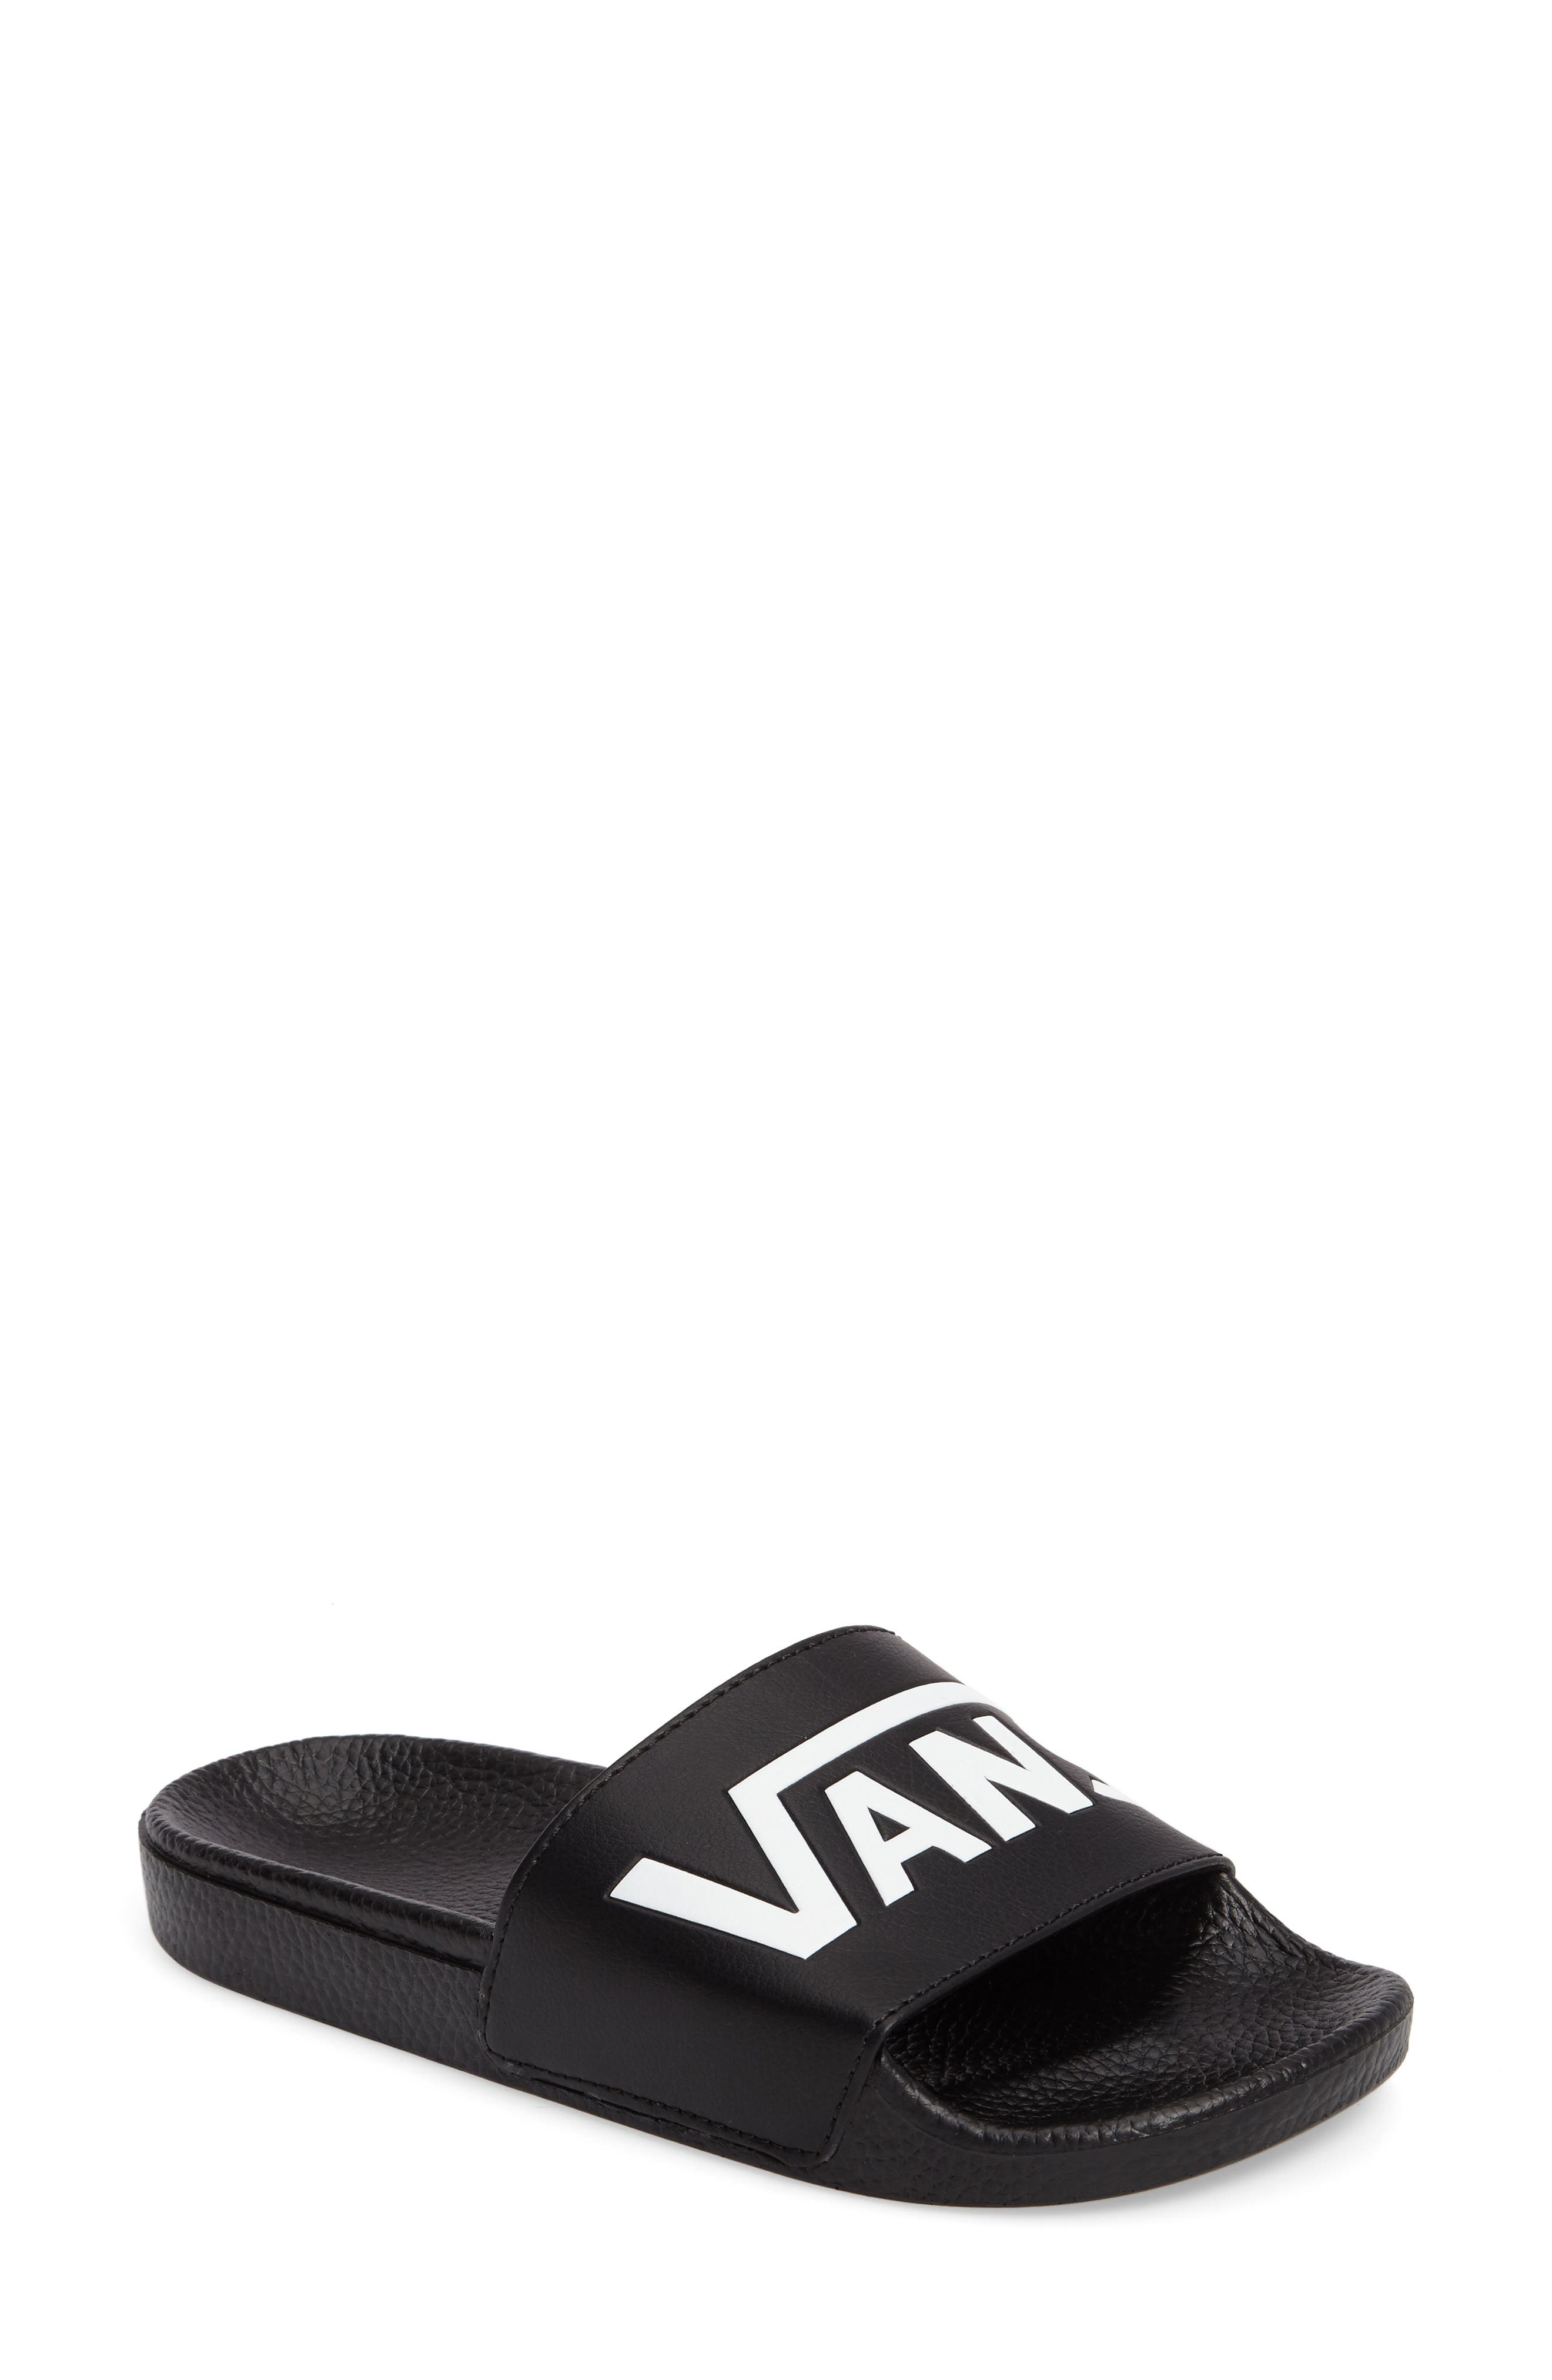 Main Image - Vans Slide-On Sandal (Women)